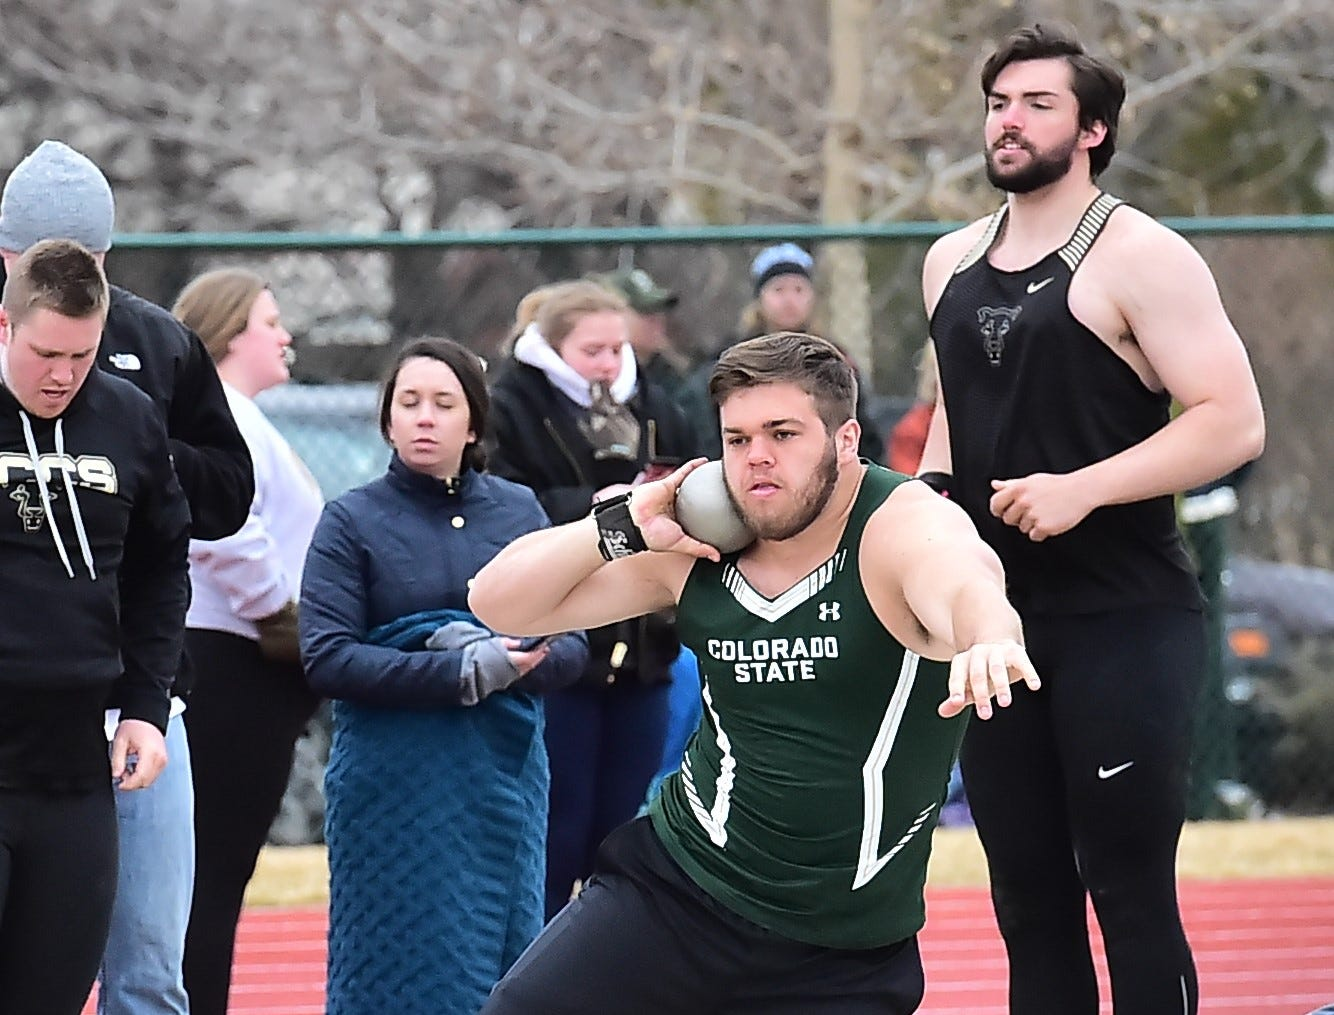 CSU's Beau Gordon competes in the shot put Saturday, March 23, 2019, in the Fum McGraw Open on Saturday at Colorado State University's Jack Christiansen Track.